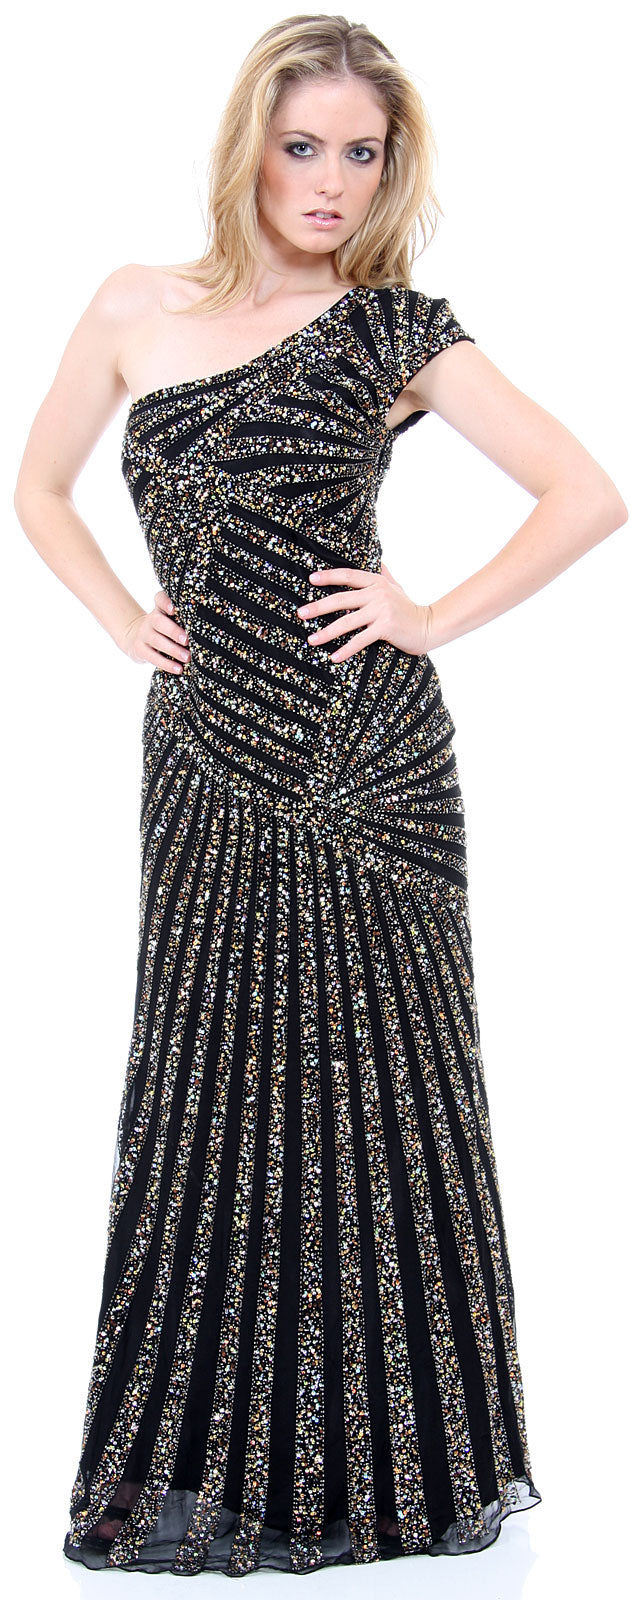 Main image of Full Length Sophisticated Sequined Evening Gown